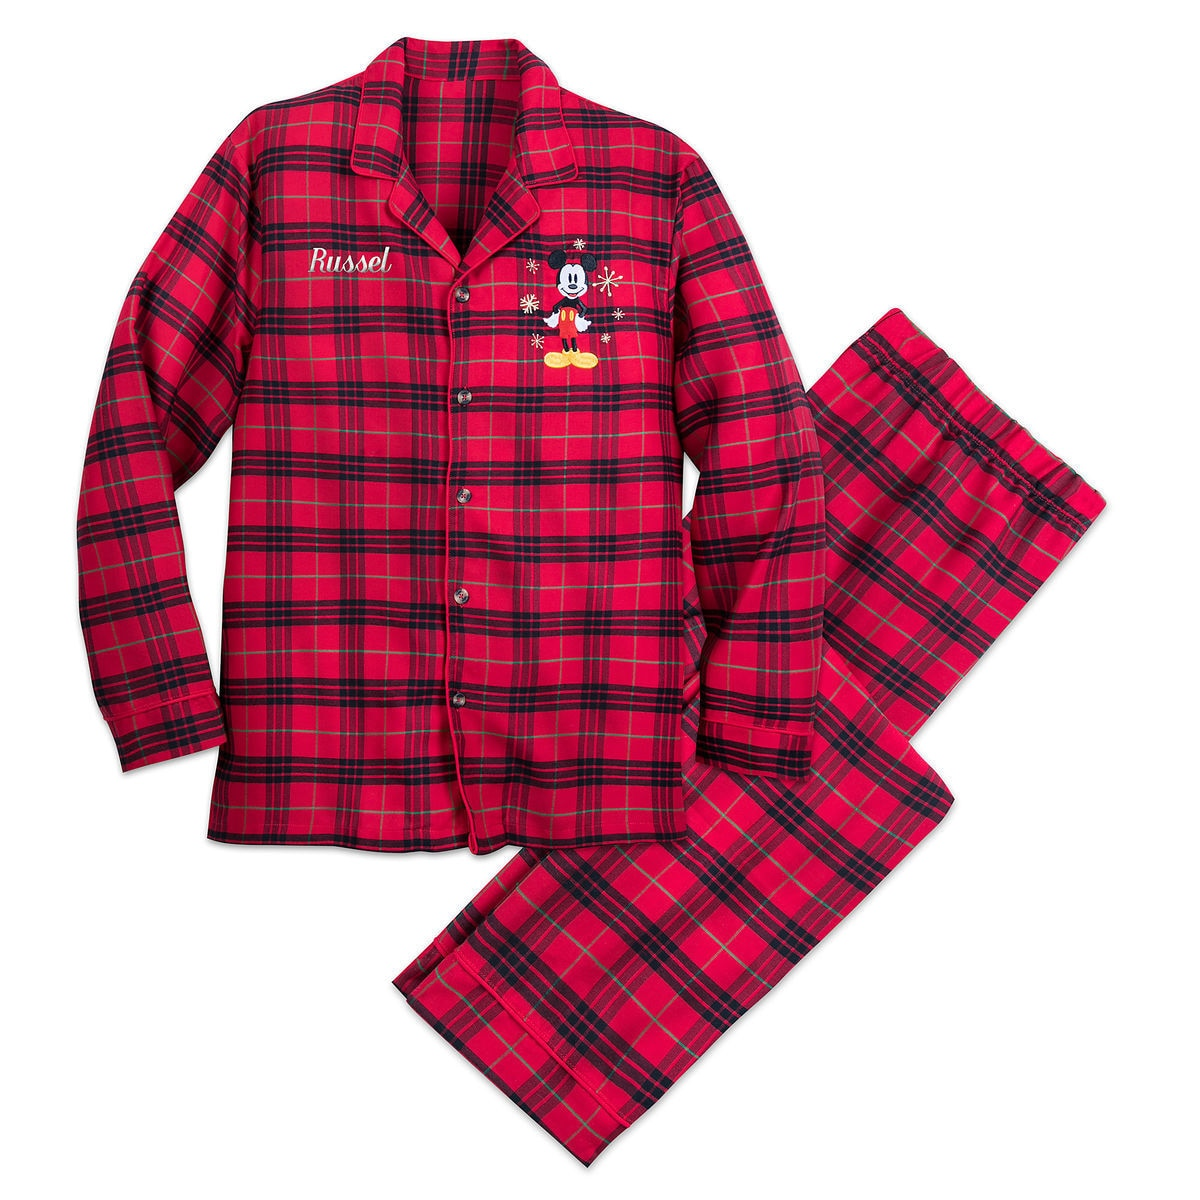 8b61b196f Mickey Mouse Holiday Plaid PJ Set for Men - Personalizable